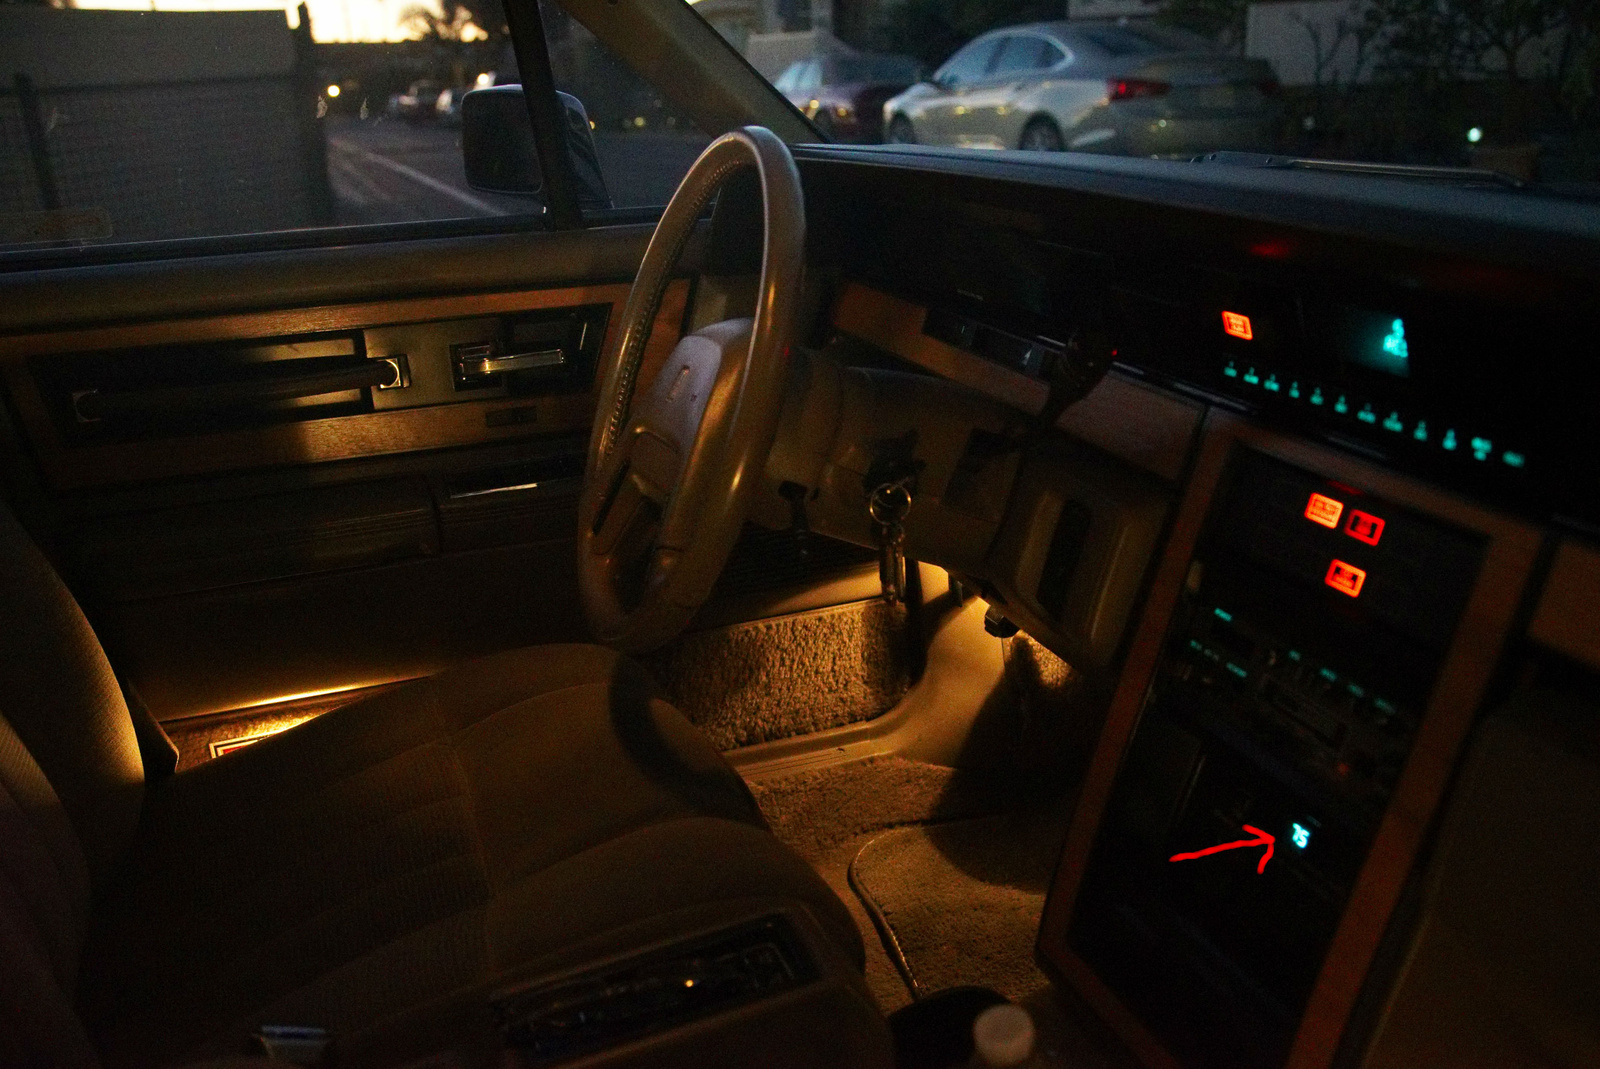 lincoln continental questions 1987 lincoln continental givenchy temperature light flashing. Black Bedroom Furniture Sets. Home Design Ideas